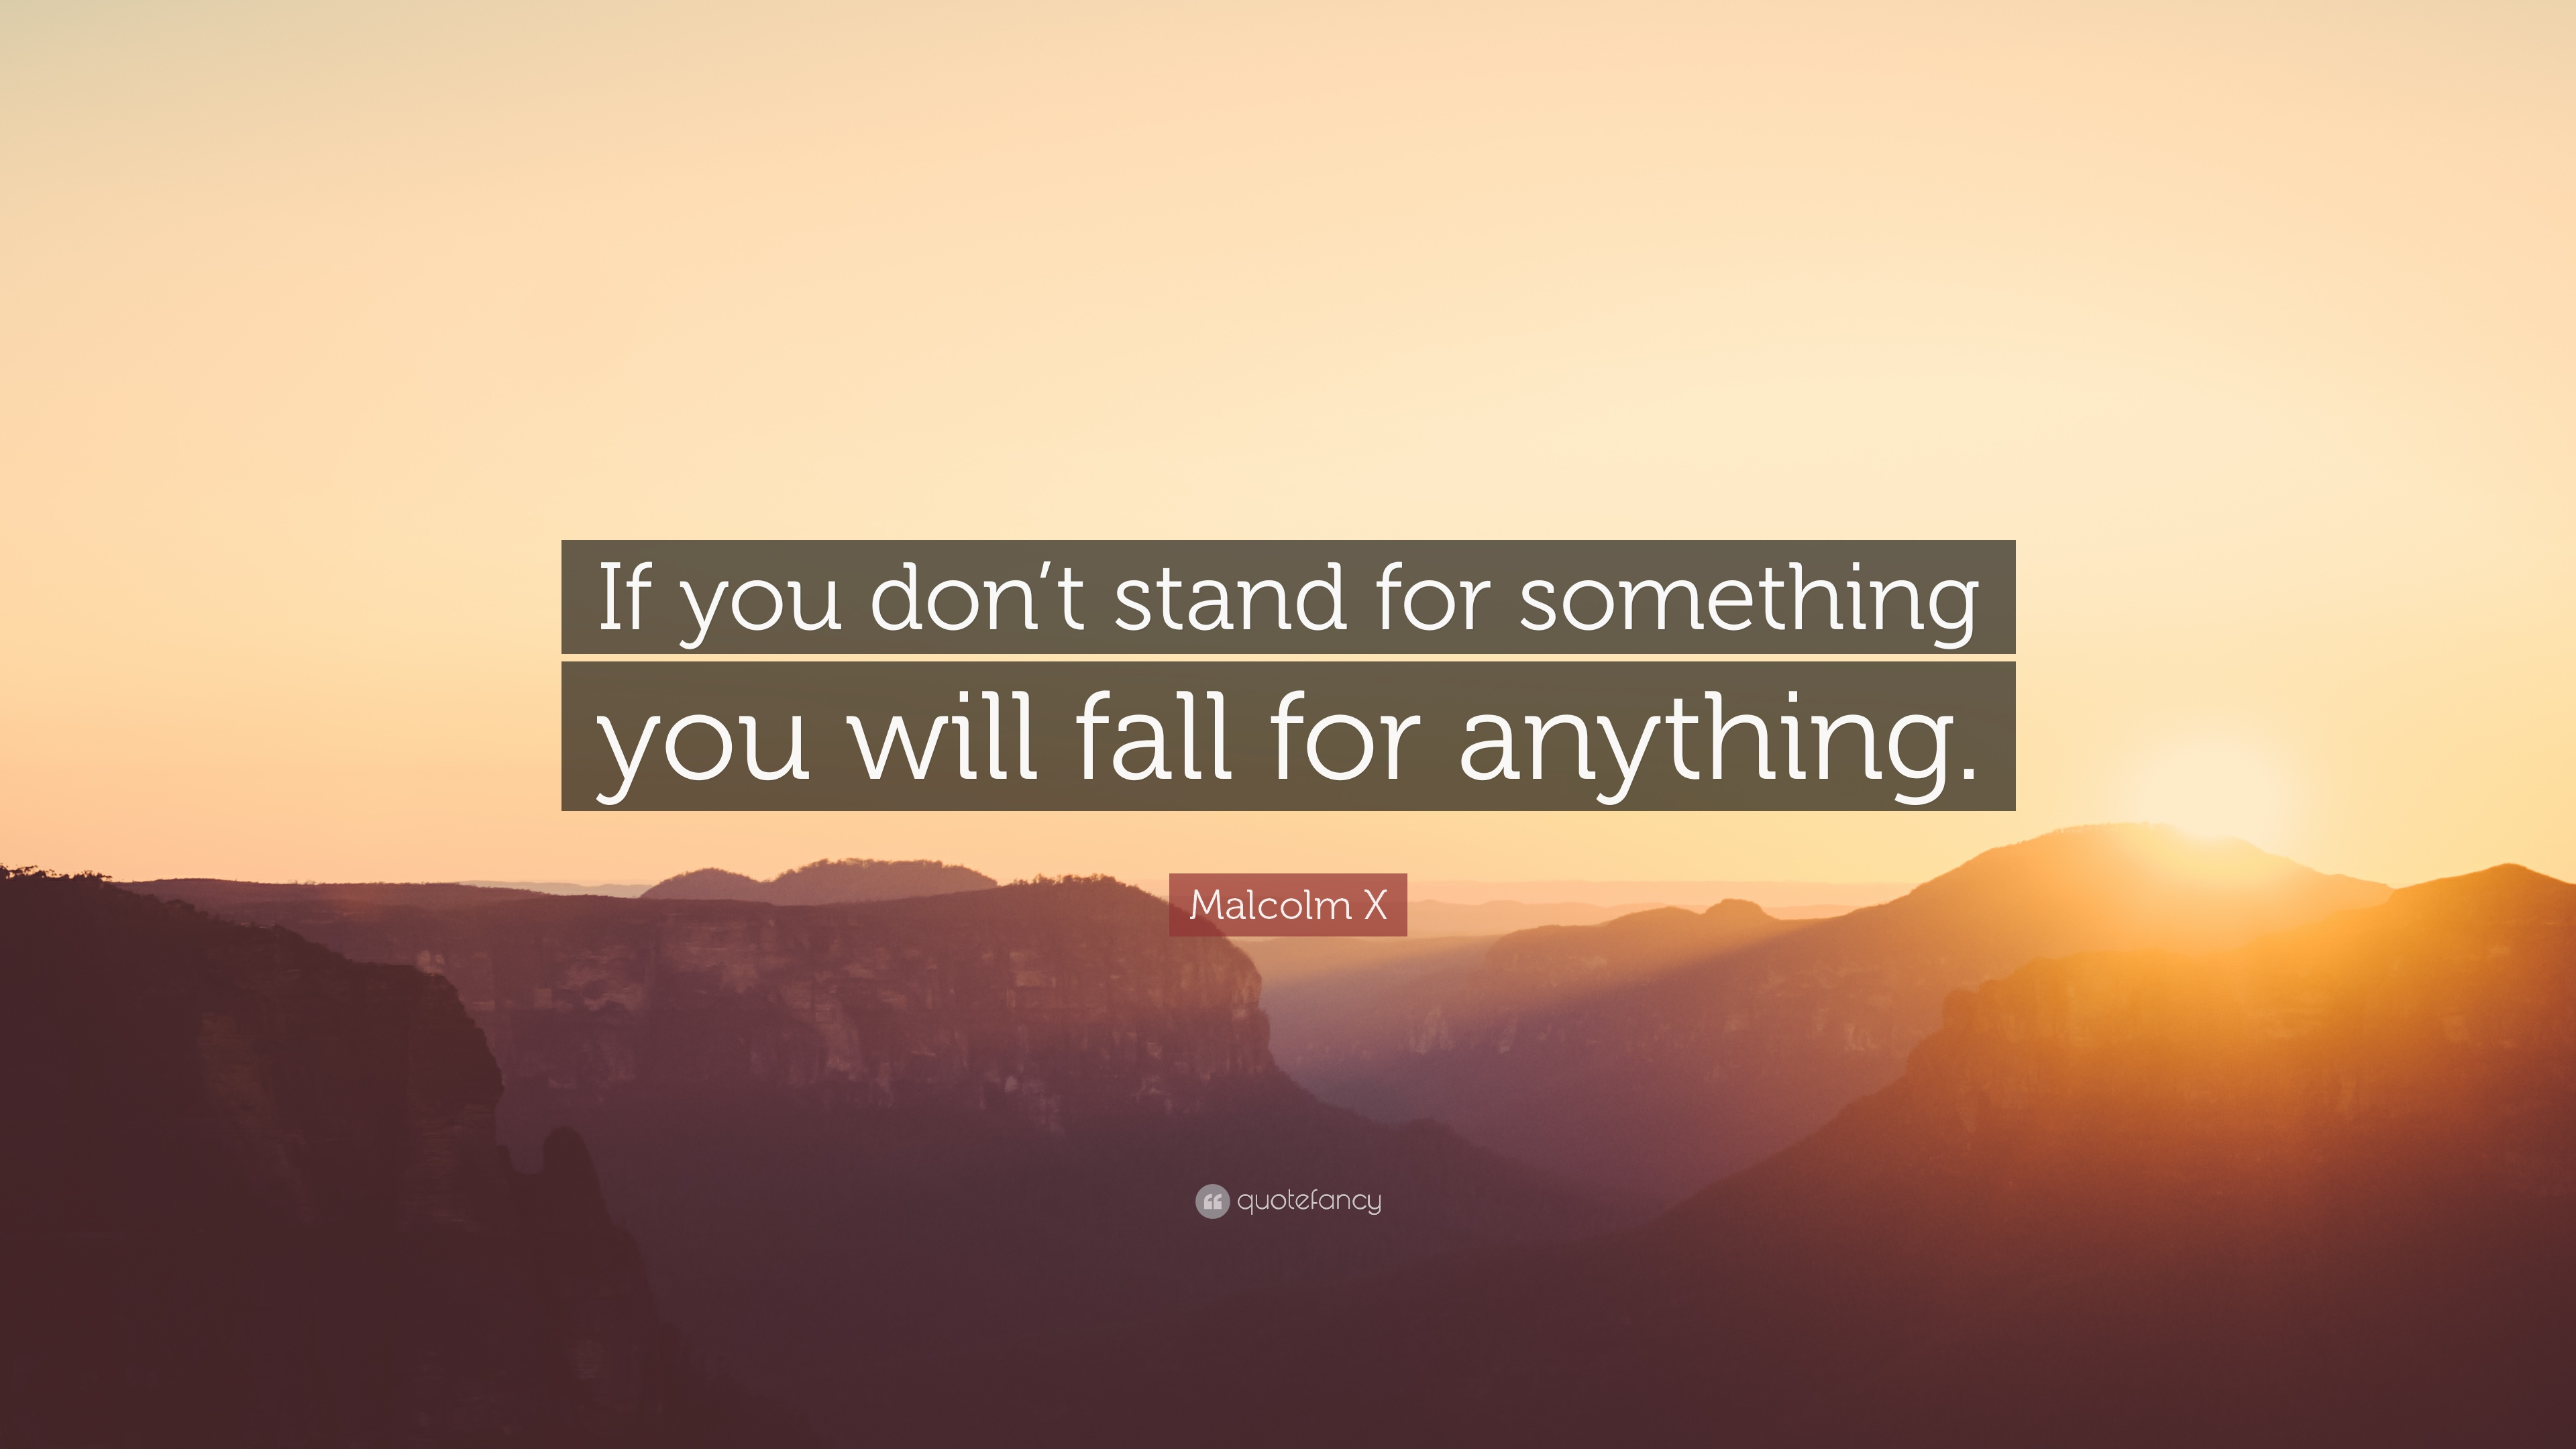 Malcolm X Quote If You Dont Stand For Something You Will Fall For